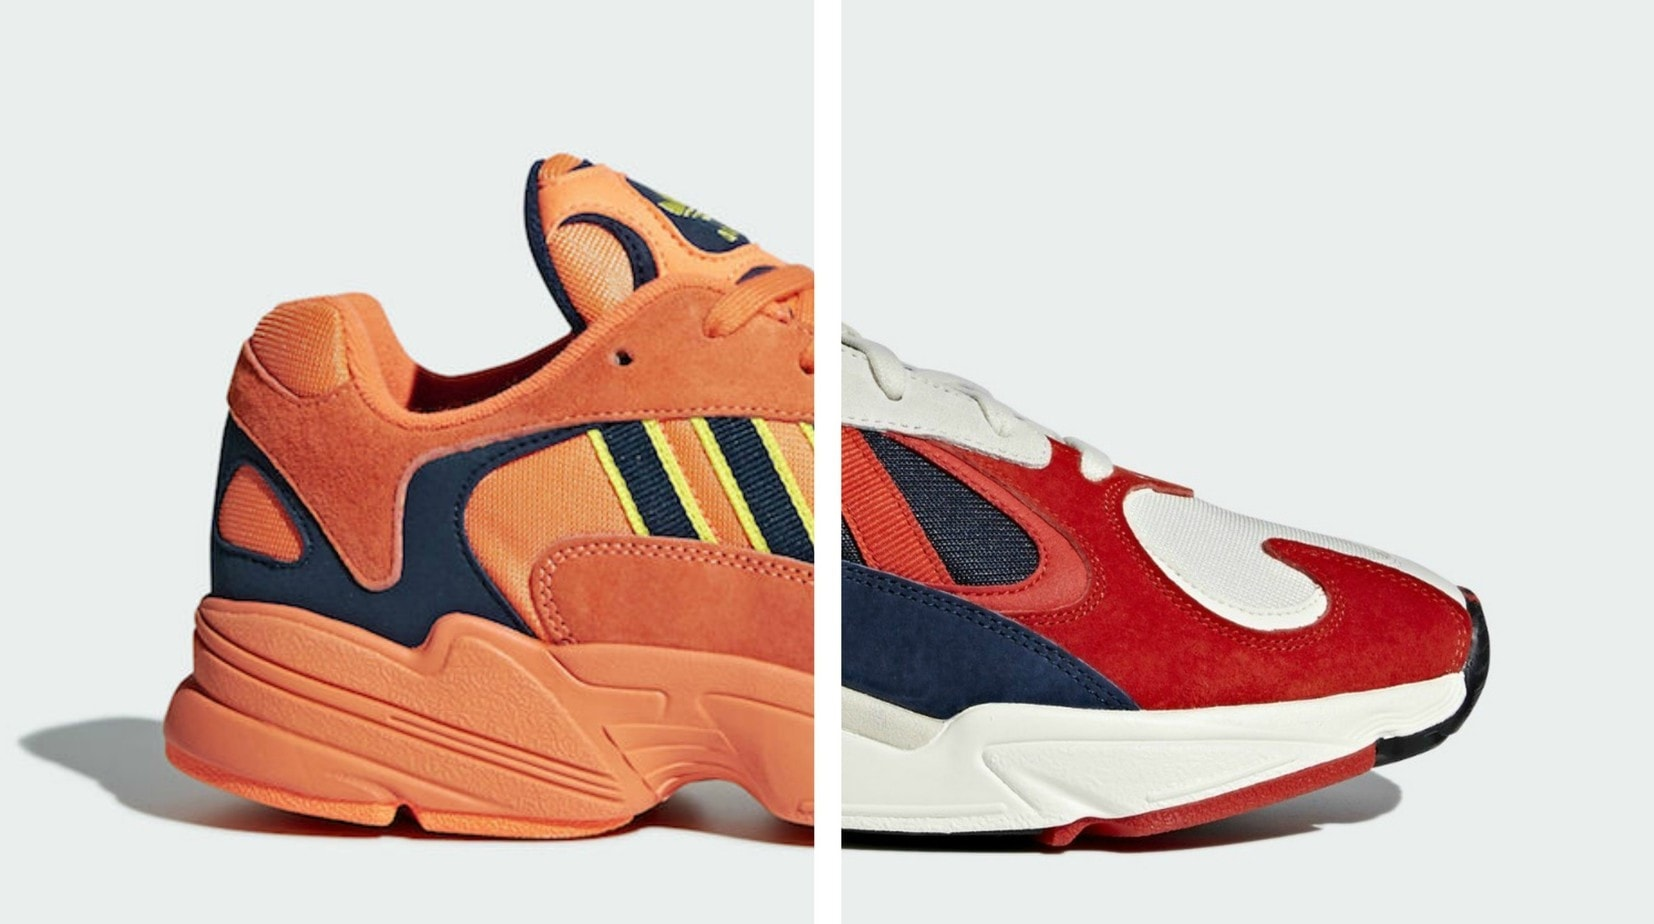 low priced 1318f 85b7d ... The adidas Yung-1 was finally revealed to be releasing soon last month.